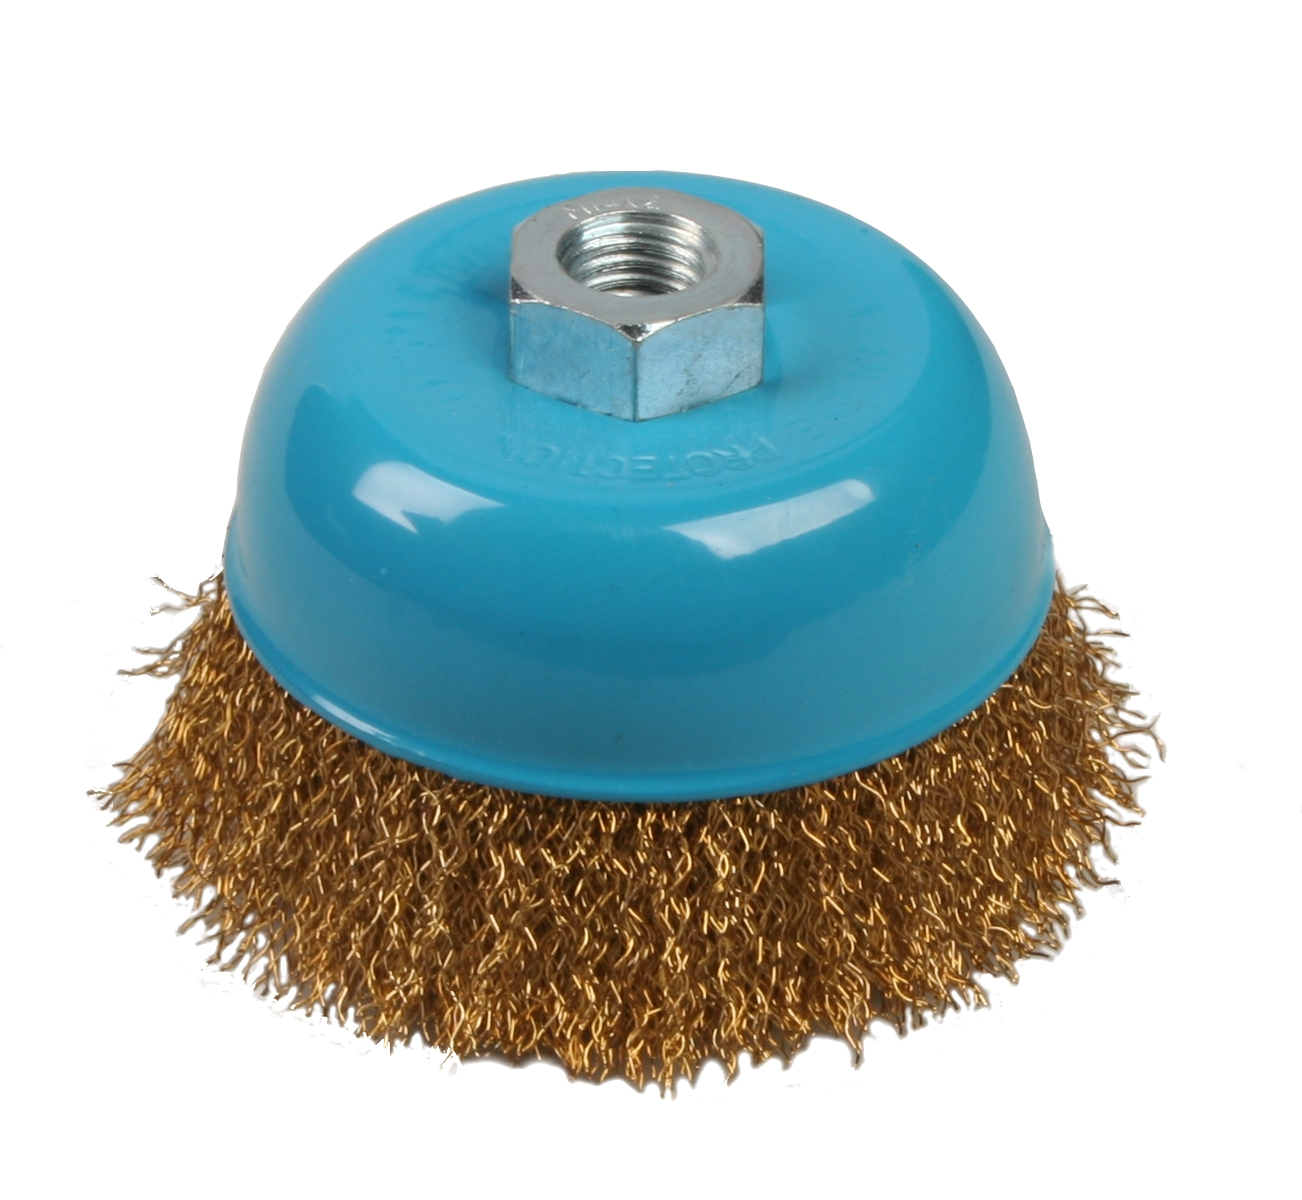 Brufer 95115 4″x14mm Wire Cup Brush